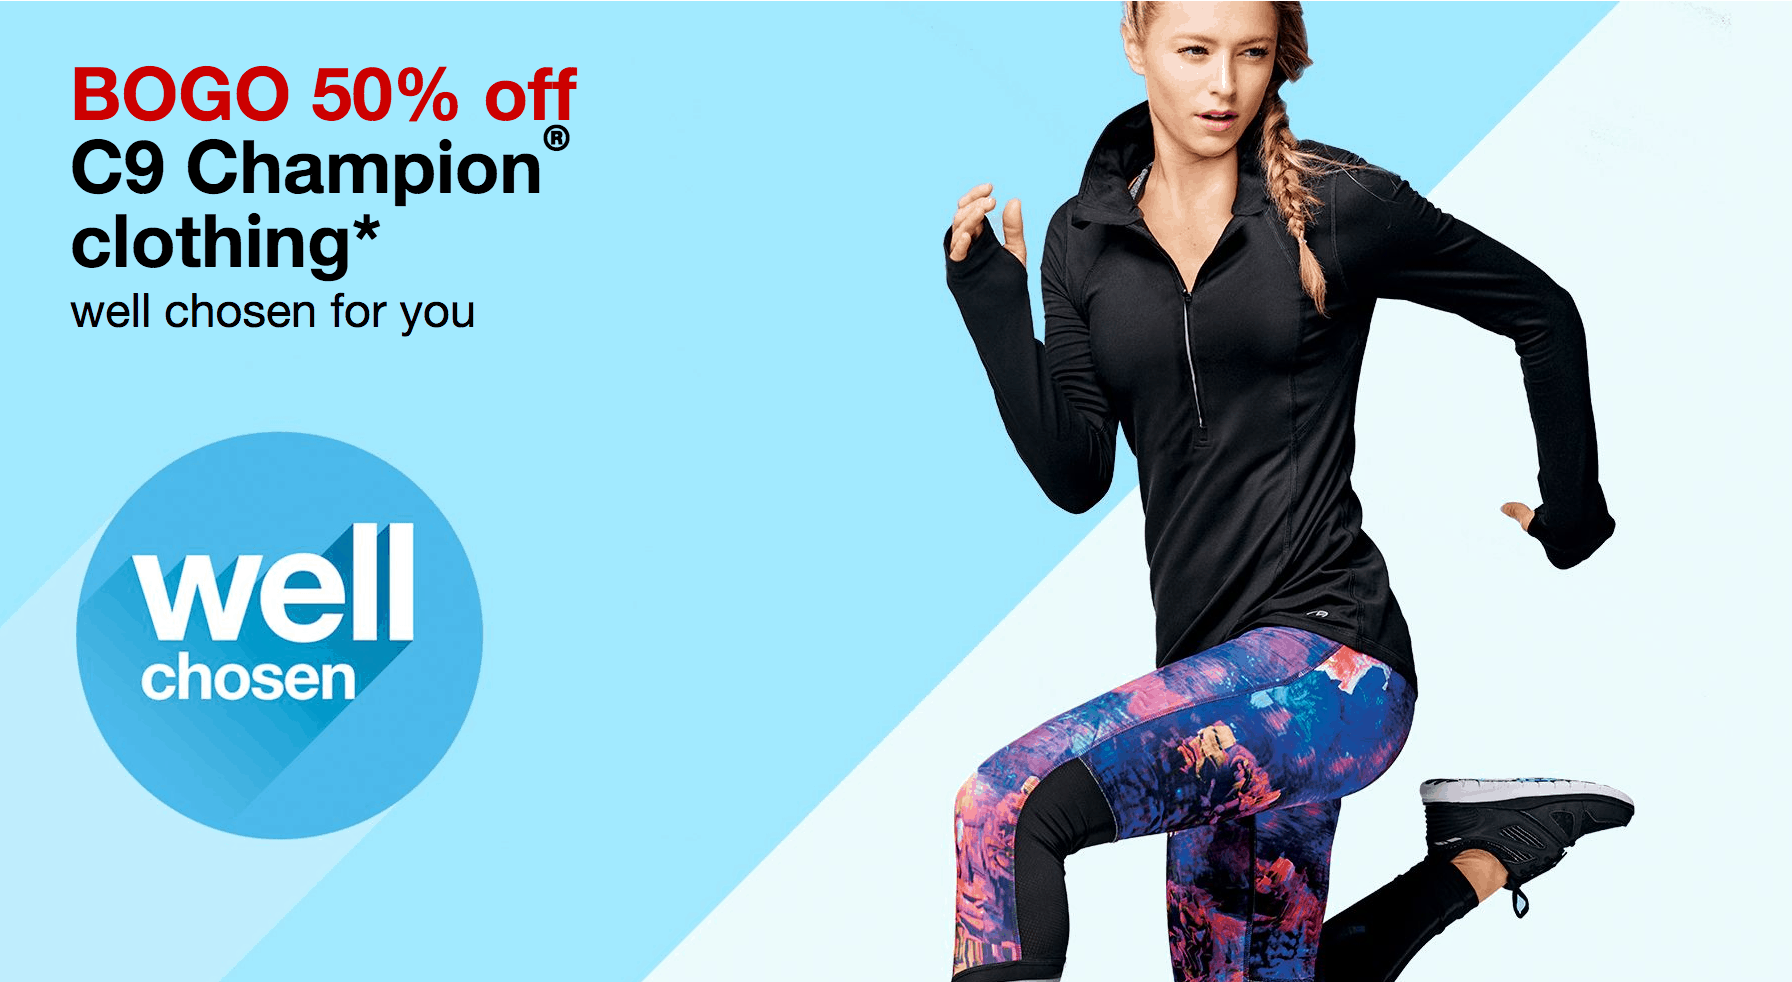 Save with the latest and verified Champion coupon & special offers now!Shop Now and Save· Limited Time Only· Never Pay Full Price· Free Shipping Coupon.